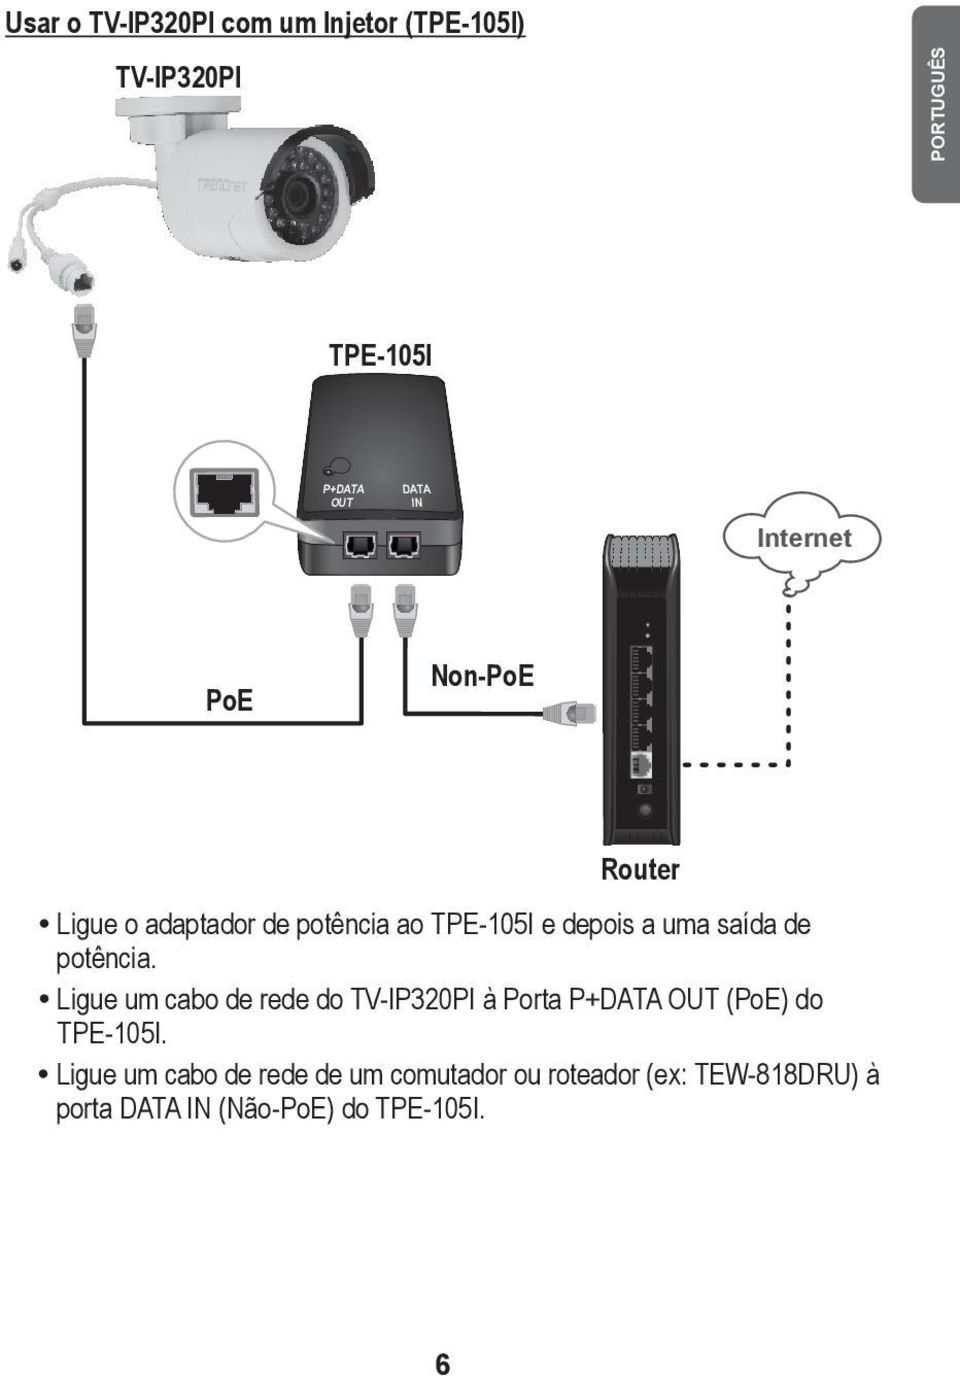 potência. Ligue um cabo de rede do TV-IP320PI à Porta P+DATA OUT (PoE) do TPE-105I.